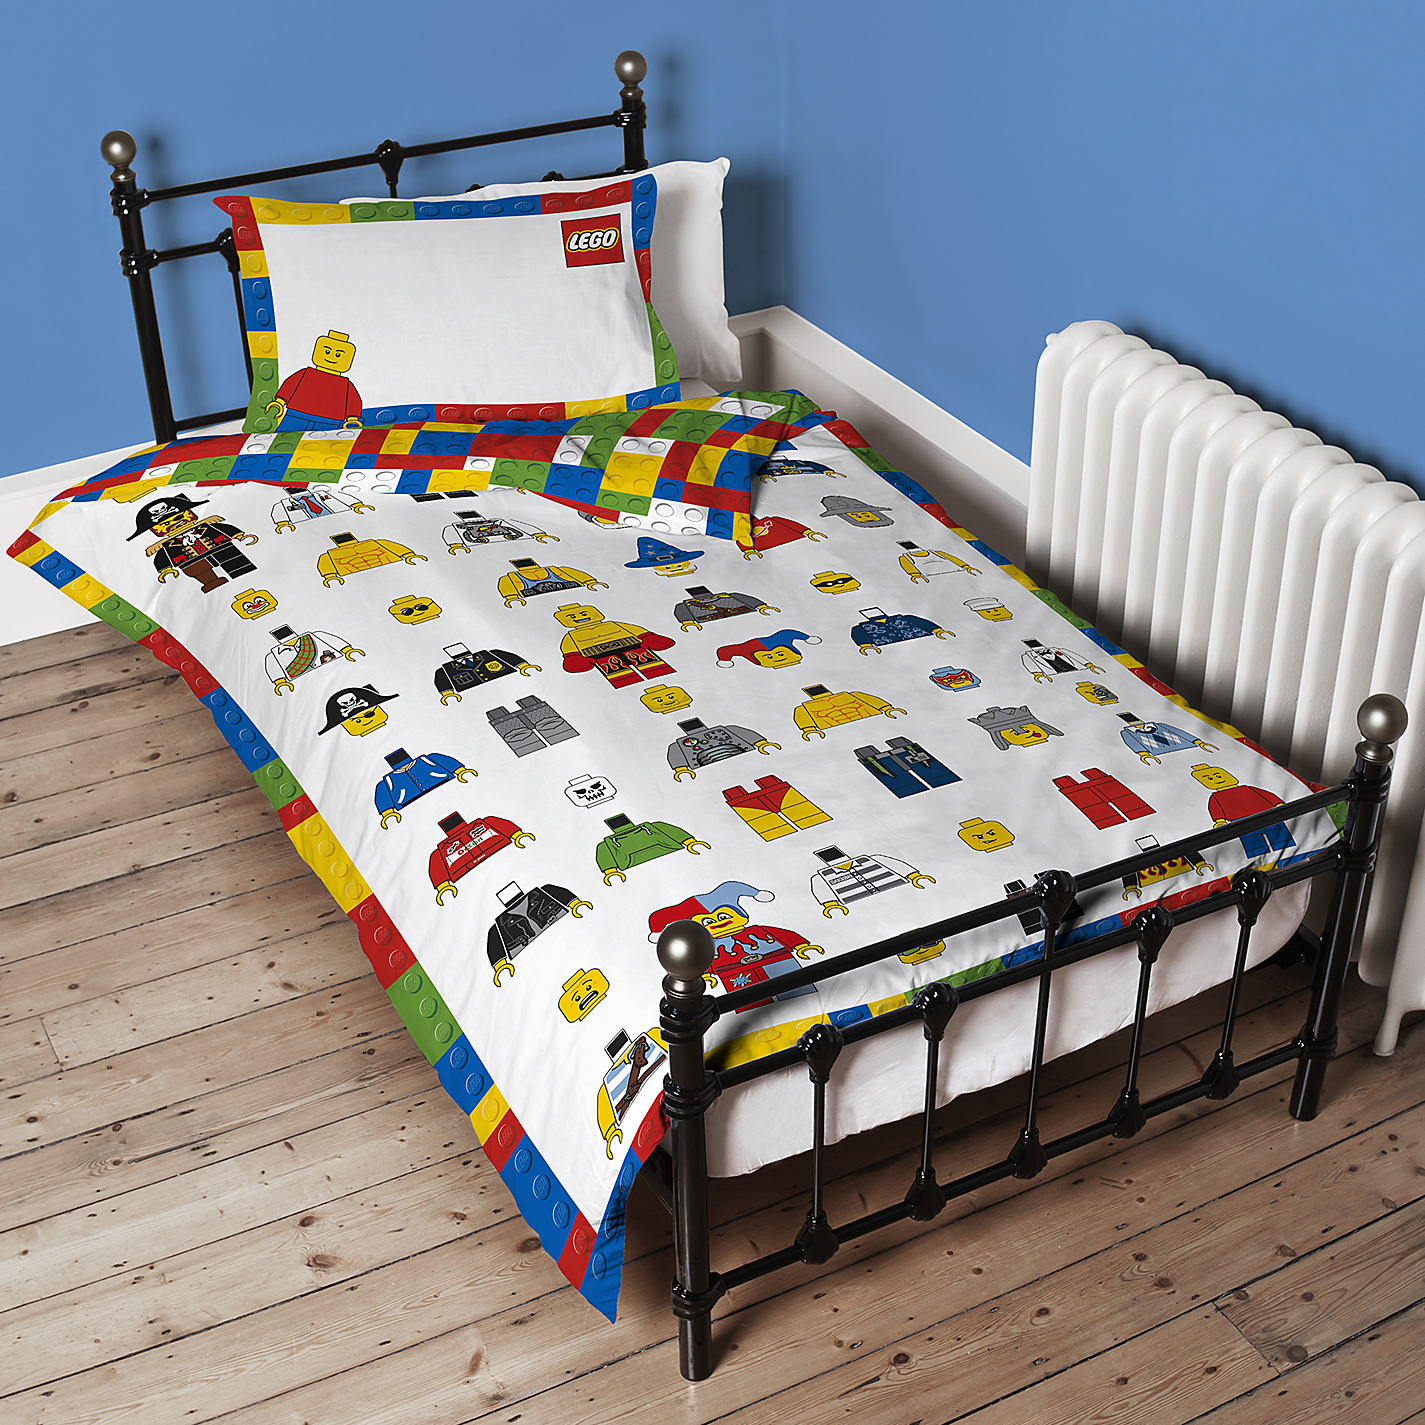 Childrens bedding sets john lewis buy lego single duvet cover and pillowcase set online at johnlewis gumiabroncs Gallery